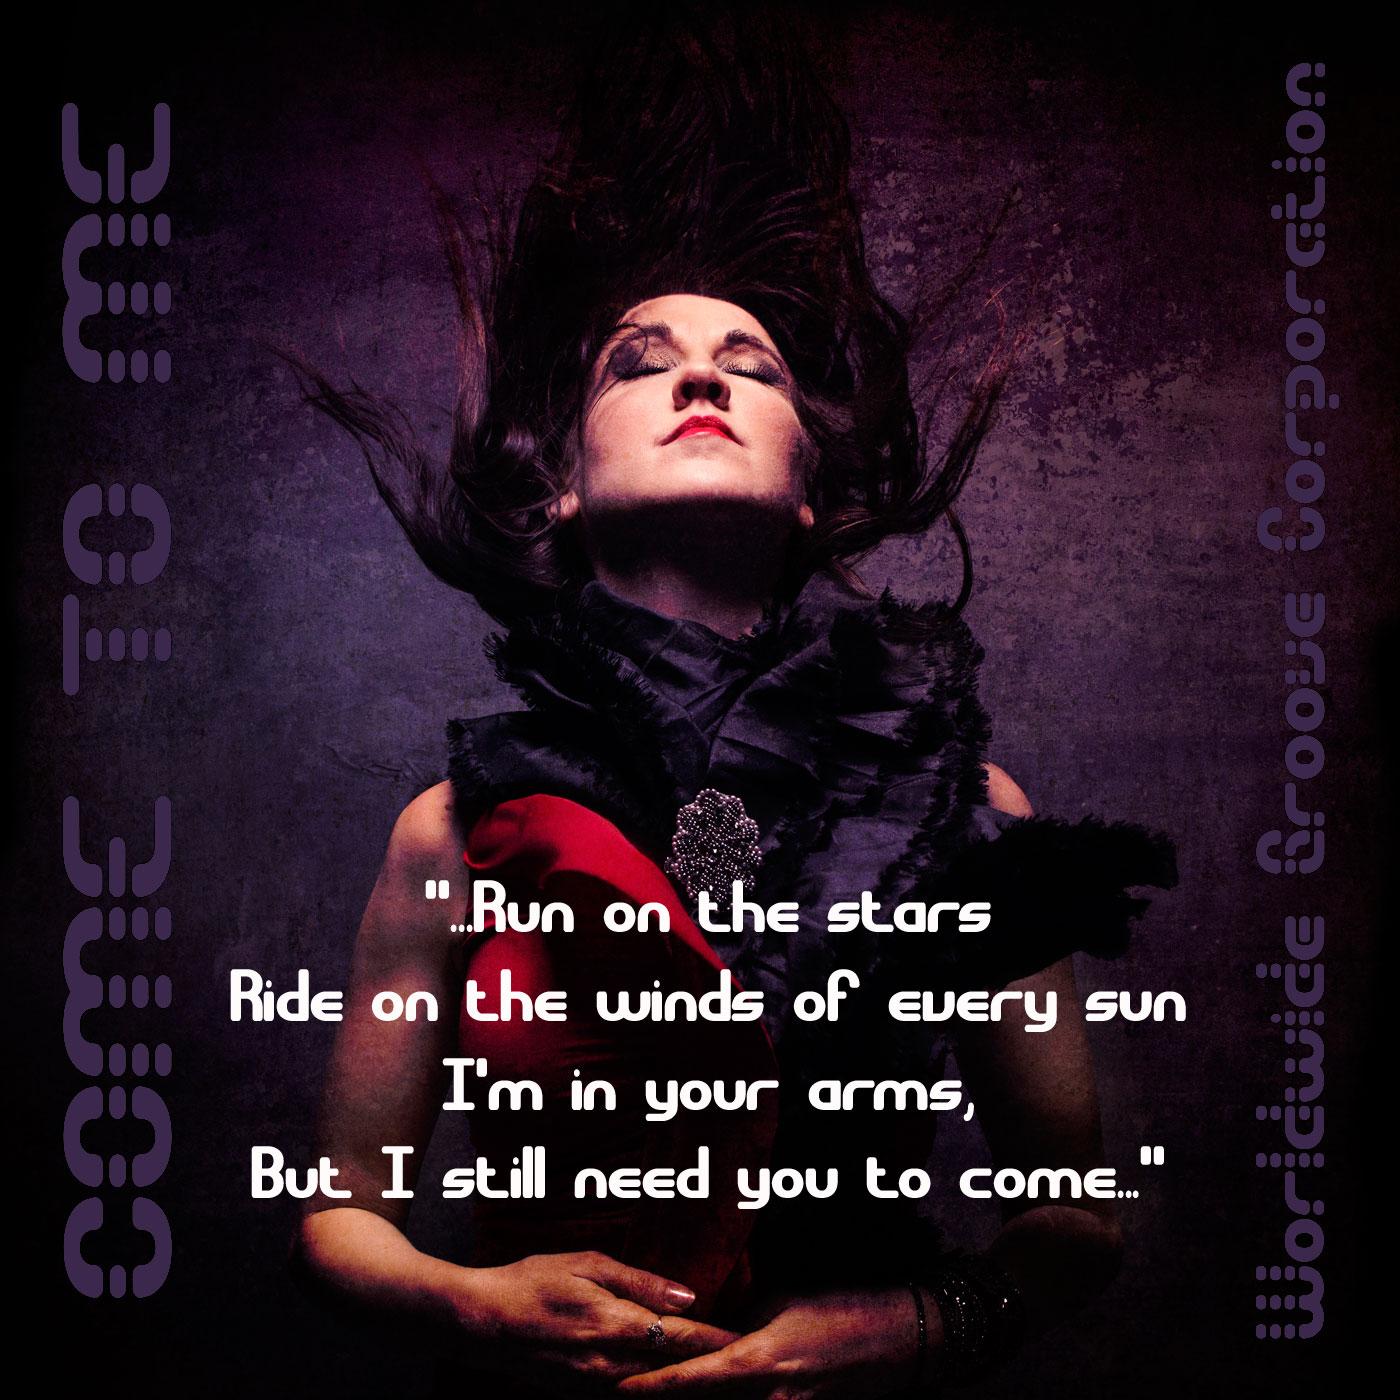 Come To Me [aka: the I want Jesus to come back song]  music by Ellen Tift and Kurt Goebel, words by Ellen Tift ©Rock of Life Music  Who am I to you Why did you choose me to love I am so small, you know well What I'm incapable of  You gave the final word I can't love as you deserve I can't love as you deserve Yet you've awakened me I need you desperately I need you desperately  Come to me, come to me Come to me, come to me Run on the stars Ride on the winds of every sun I'm in your arms But I still need you to come  How do I bide my time How can I possibly go on This place is not my home This air is toxic to my lungs  Give me the strength to last Without you I'm destroyed Without you I'm destroyed Please make this aching pass Show me you hear my voice Show me you hear my voice  Come to me, come to me Come to me, come to me Run on the stars Ride on the winds of every sun I'm in your arms But I still need you to come Run on the stars Ride on the winds of every sun I'm in your arms But I still need you to come